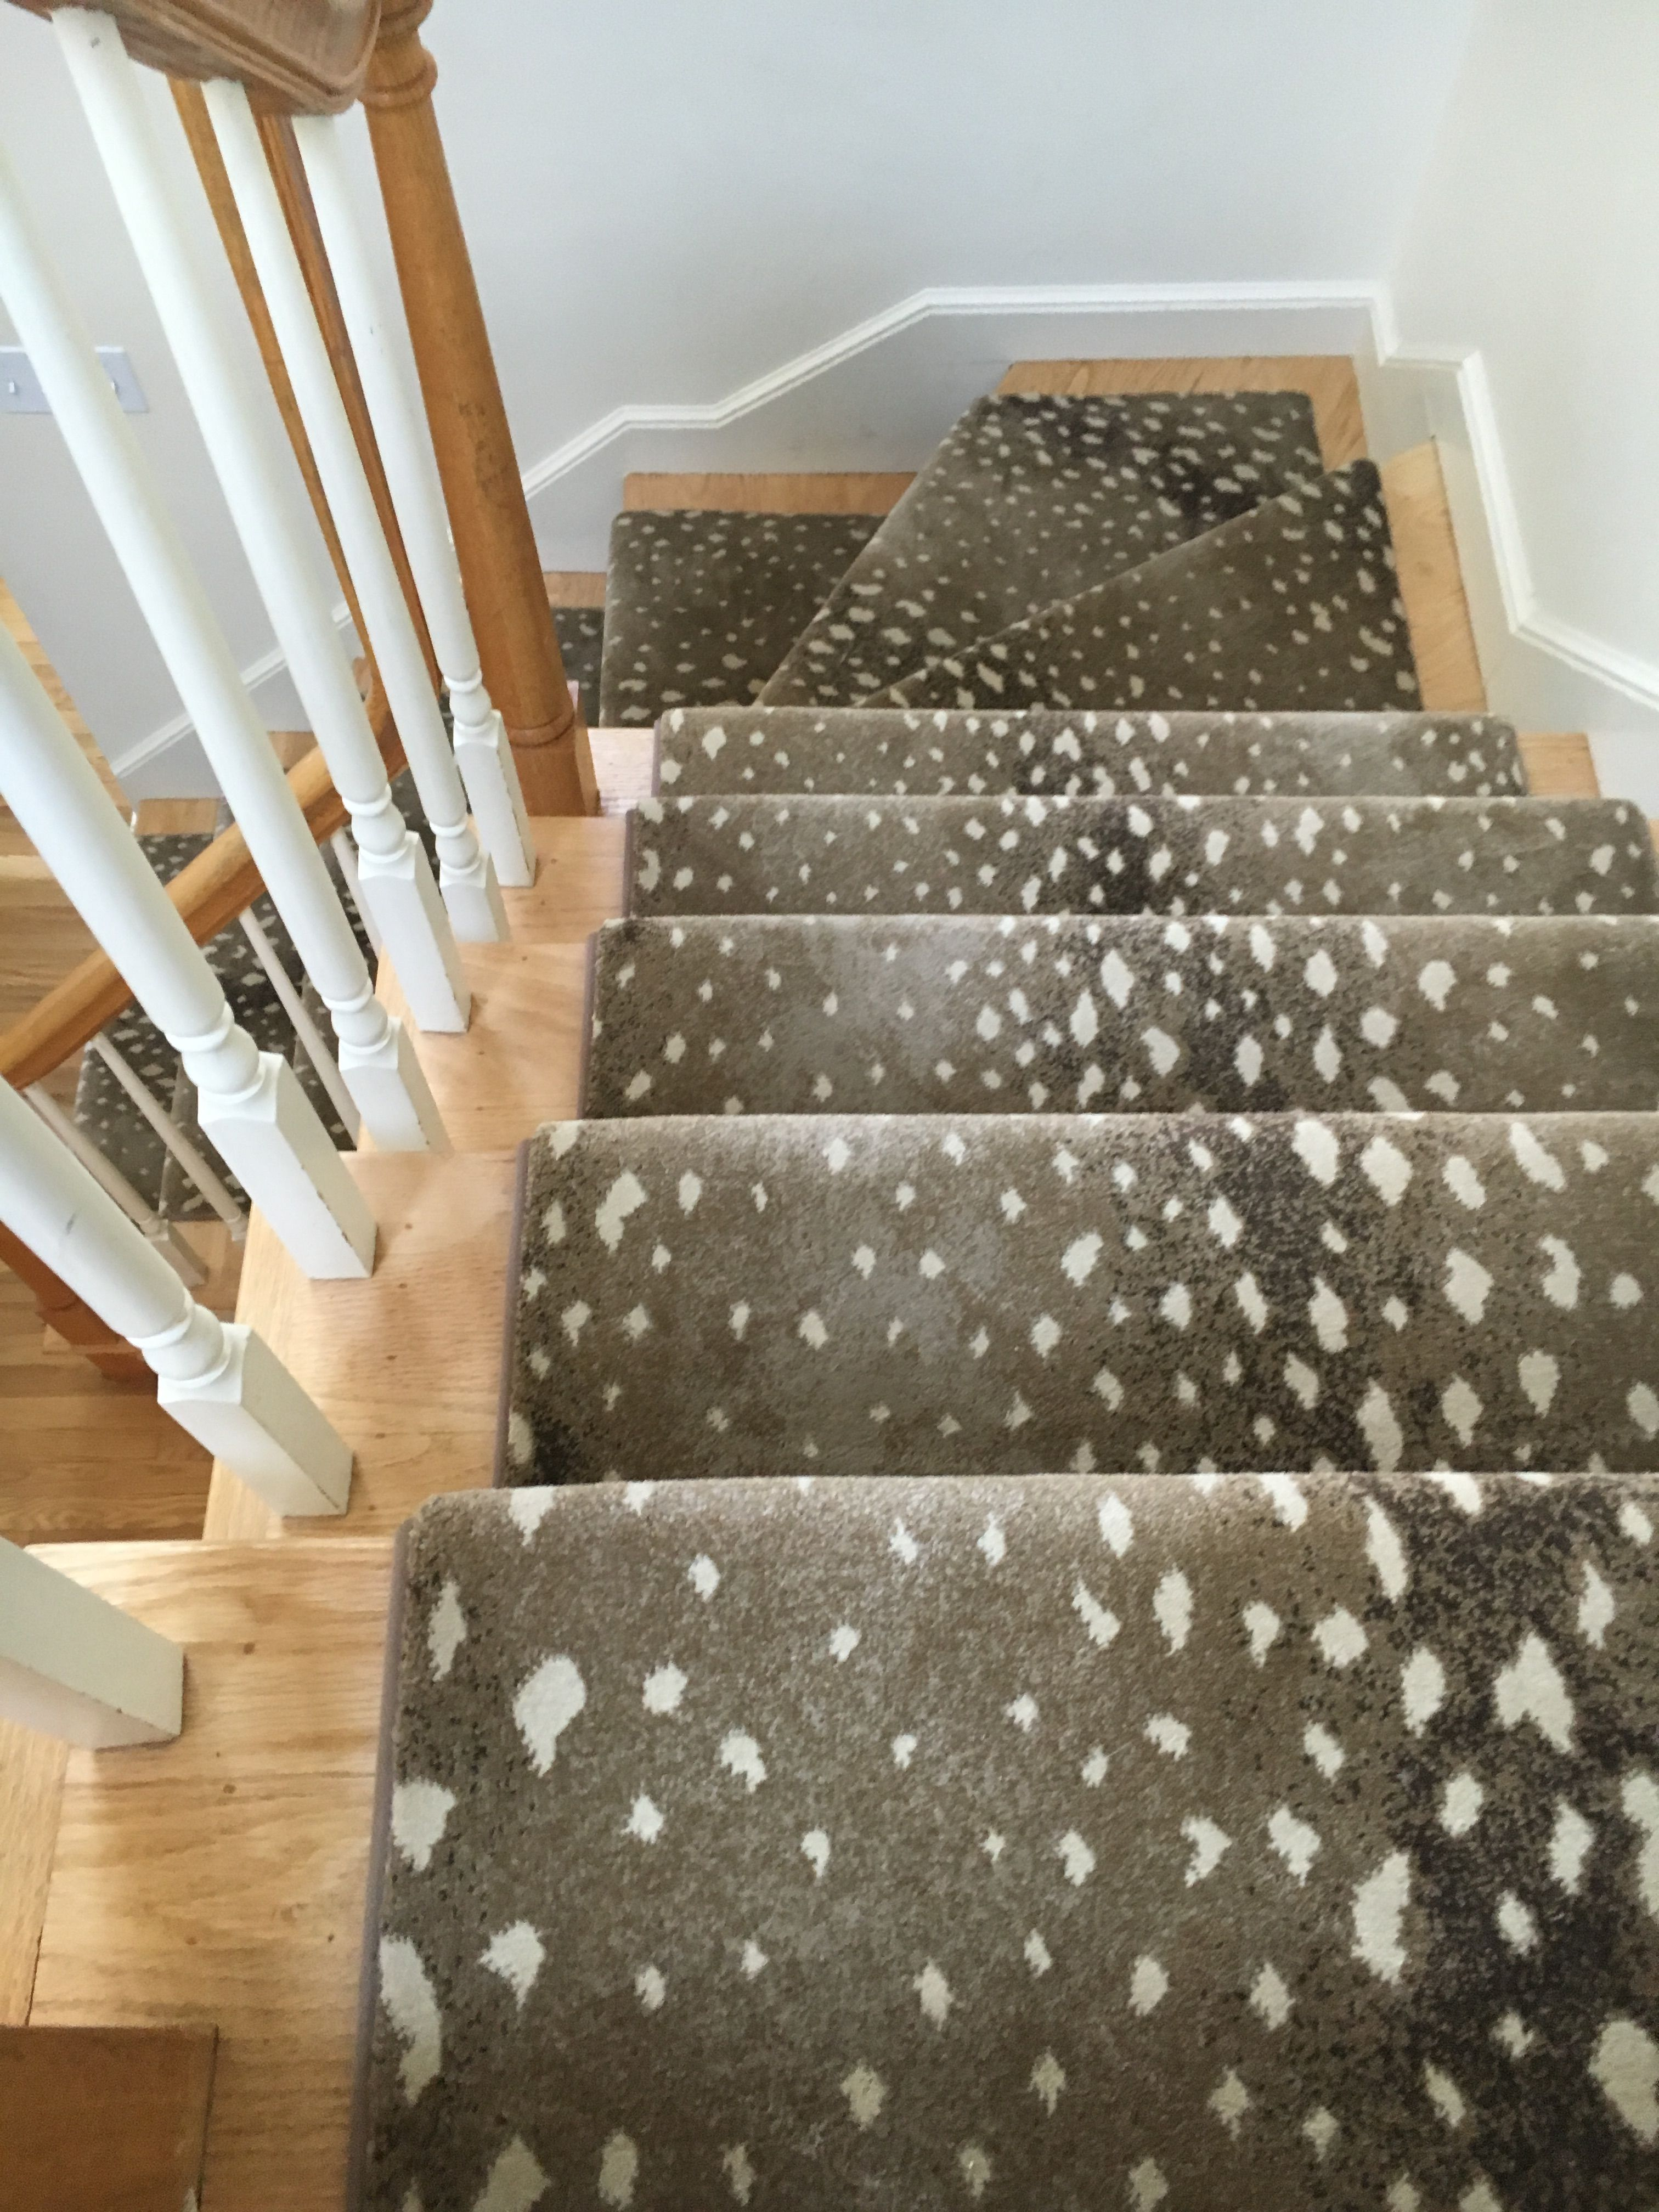 Animal Prints Are A Great Way To Bring Some Life Into A Neutral   Custom Stair Runners Near Me   Flooring   Basement Stairs   Staircase Makeover   Animal Print   Staircase Remodel